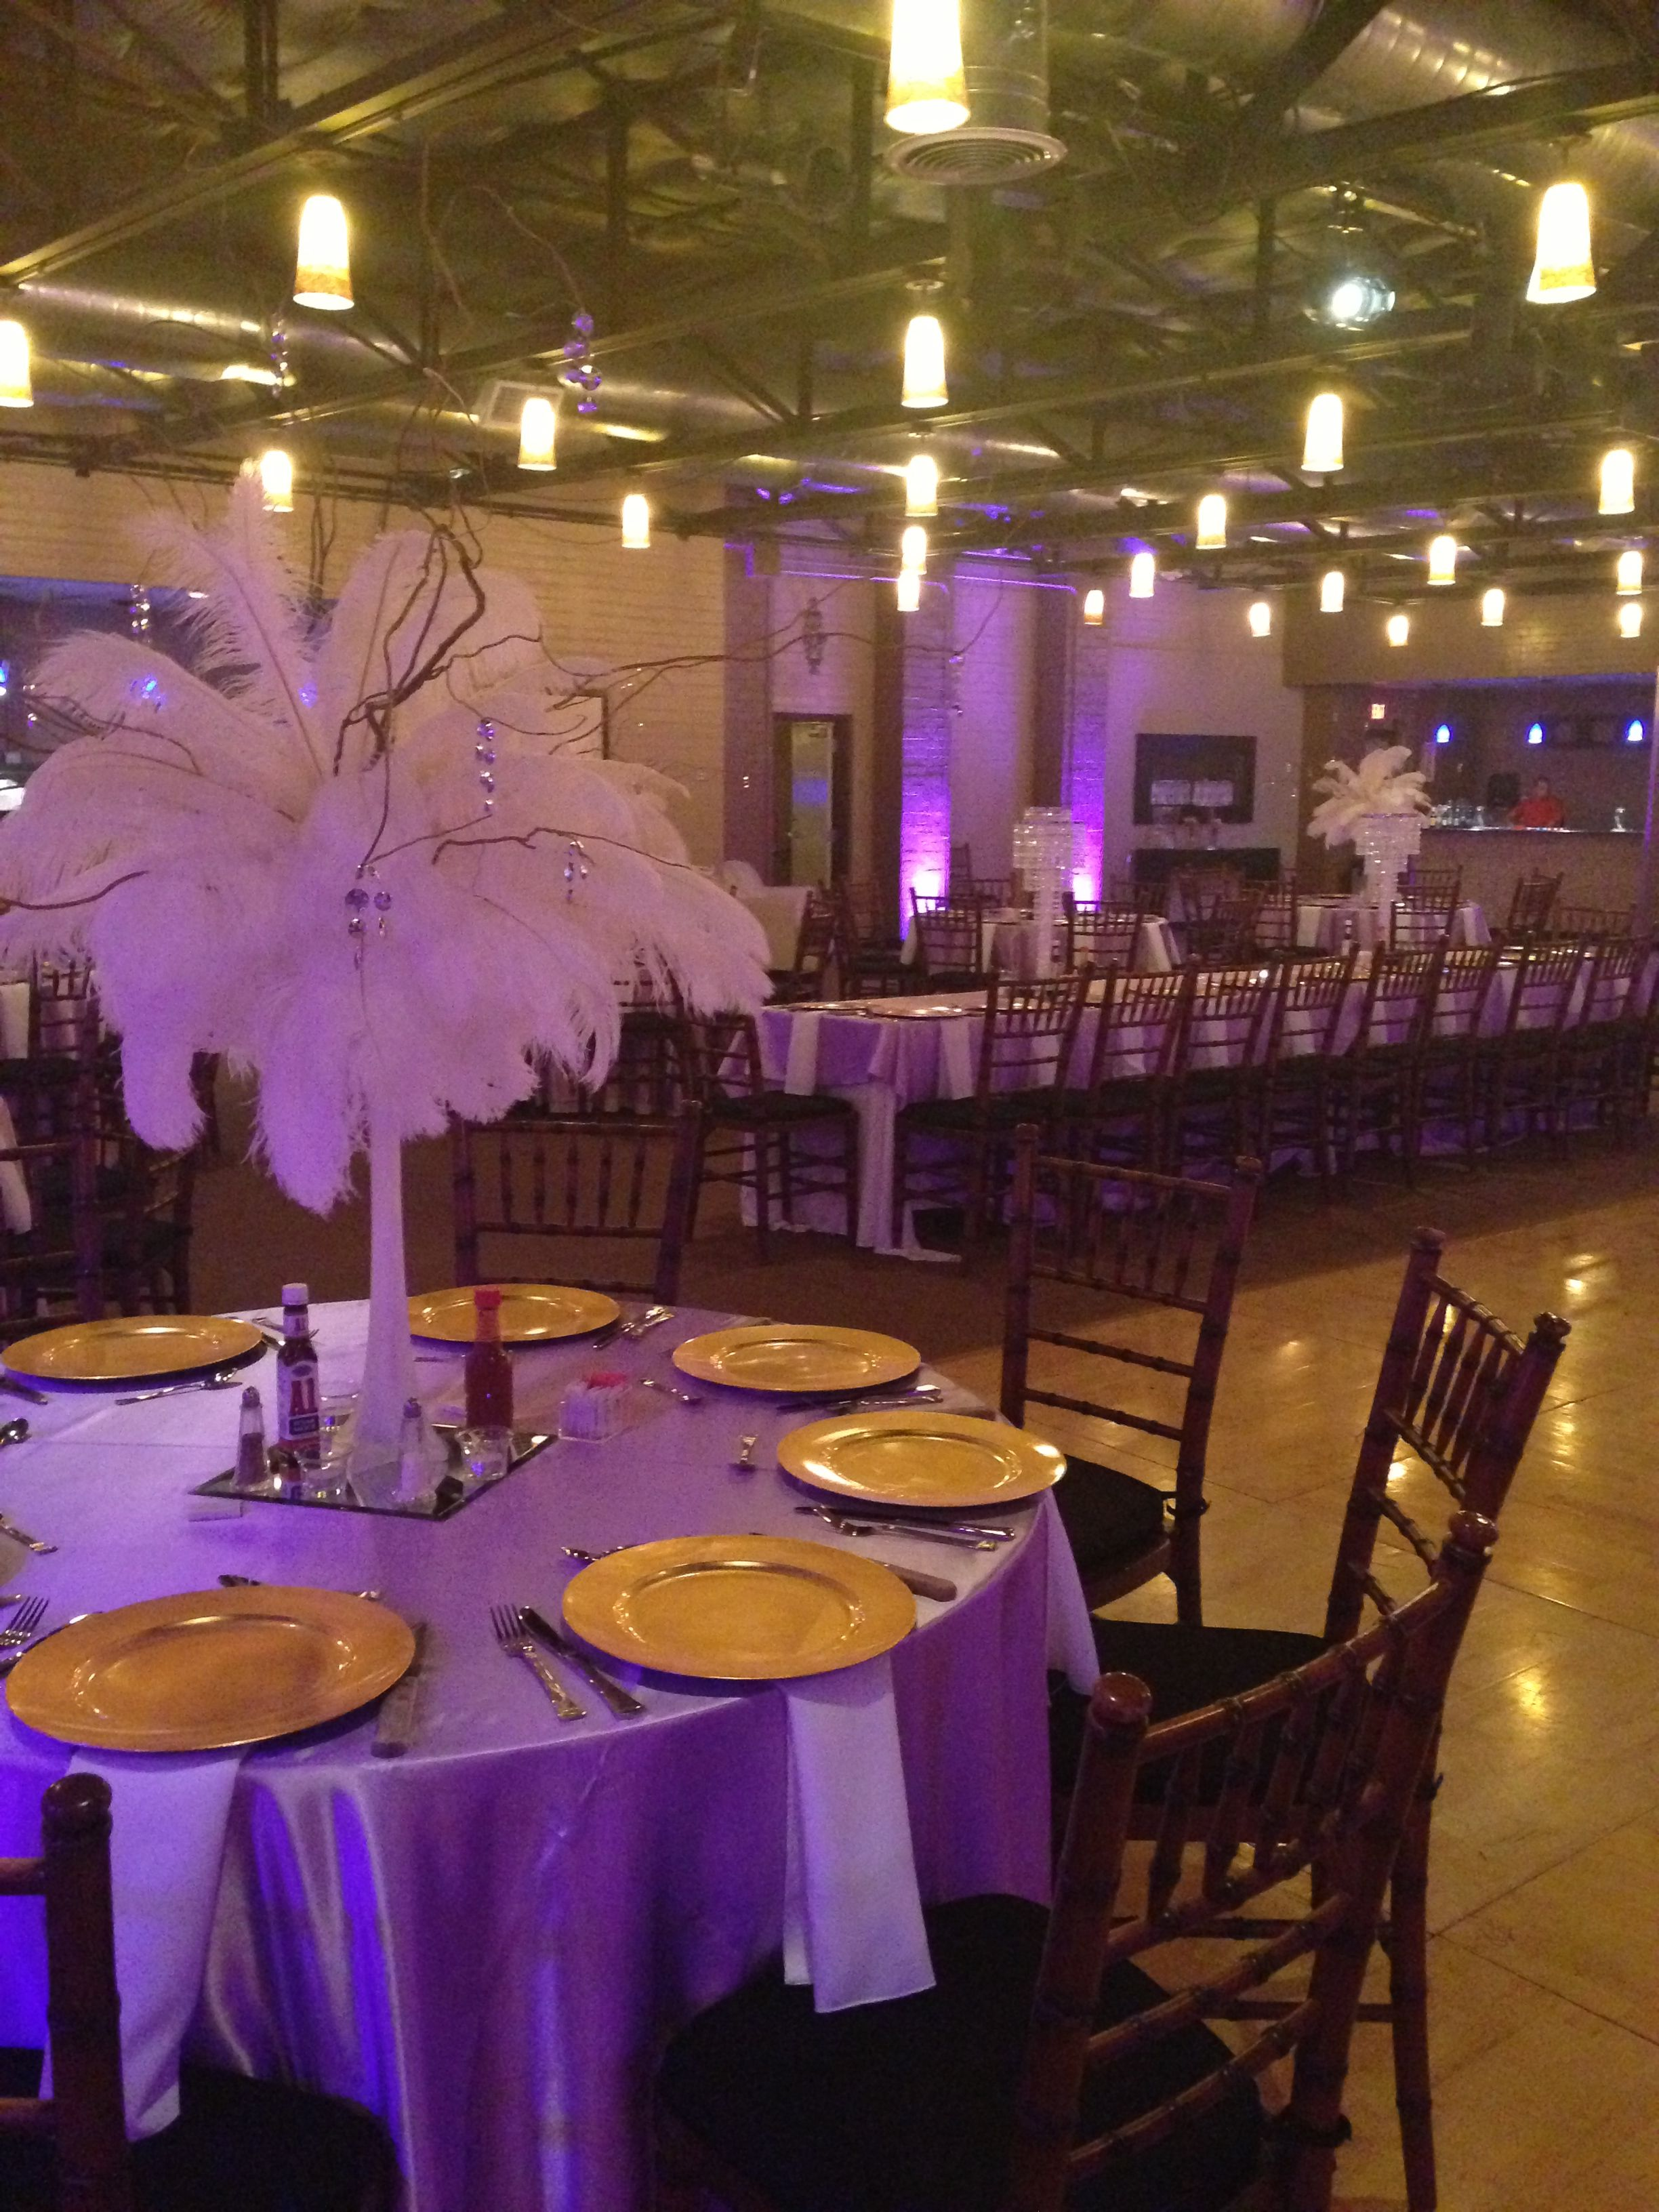 purple uplighting and feather and curly willow centerpieces Also